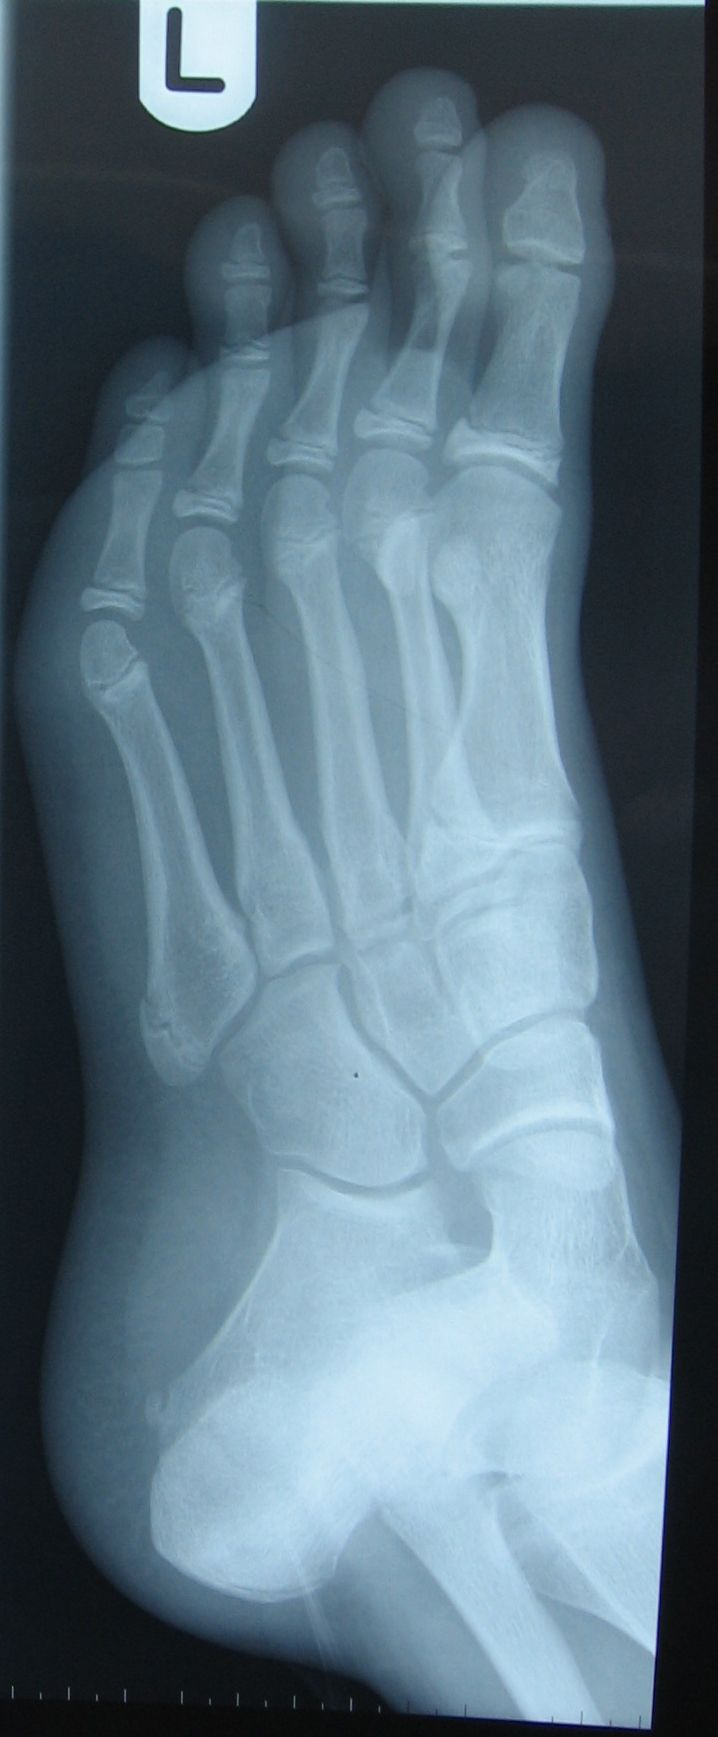 #ScienceSnaps 48: Fractured 5th Metatarsal Photo credit: (Wendy Smith) Location: Glasgow Caledonian University